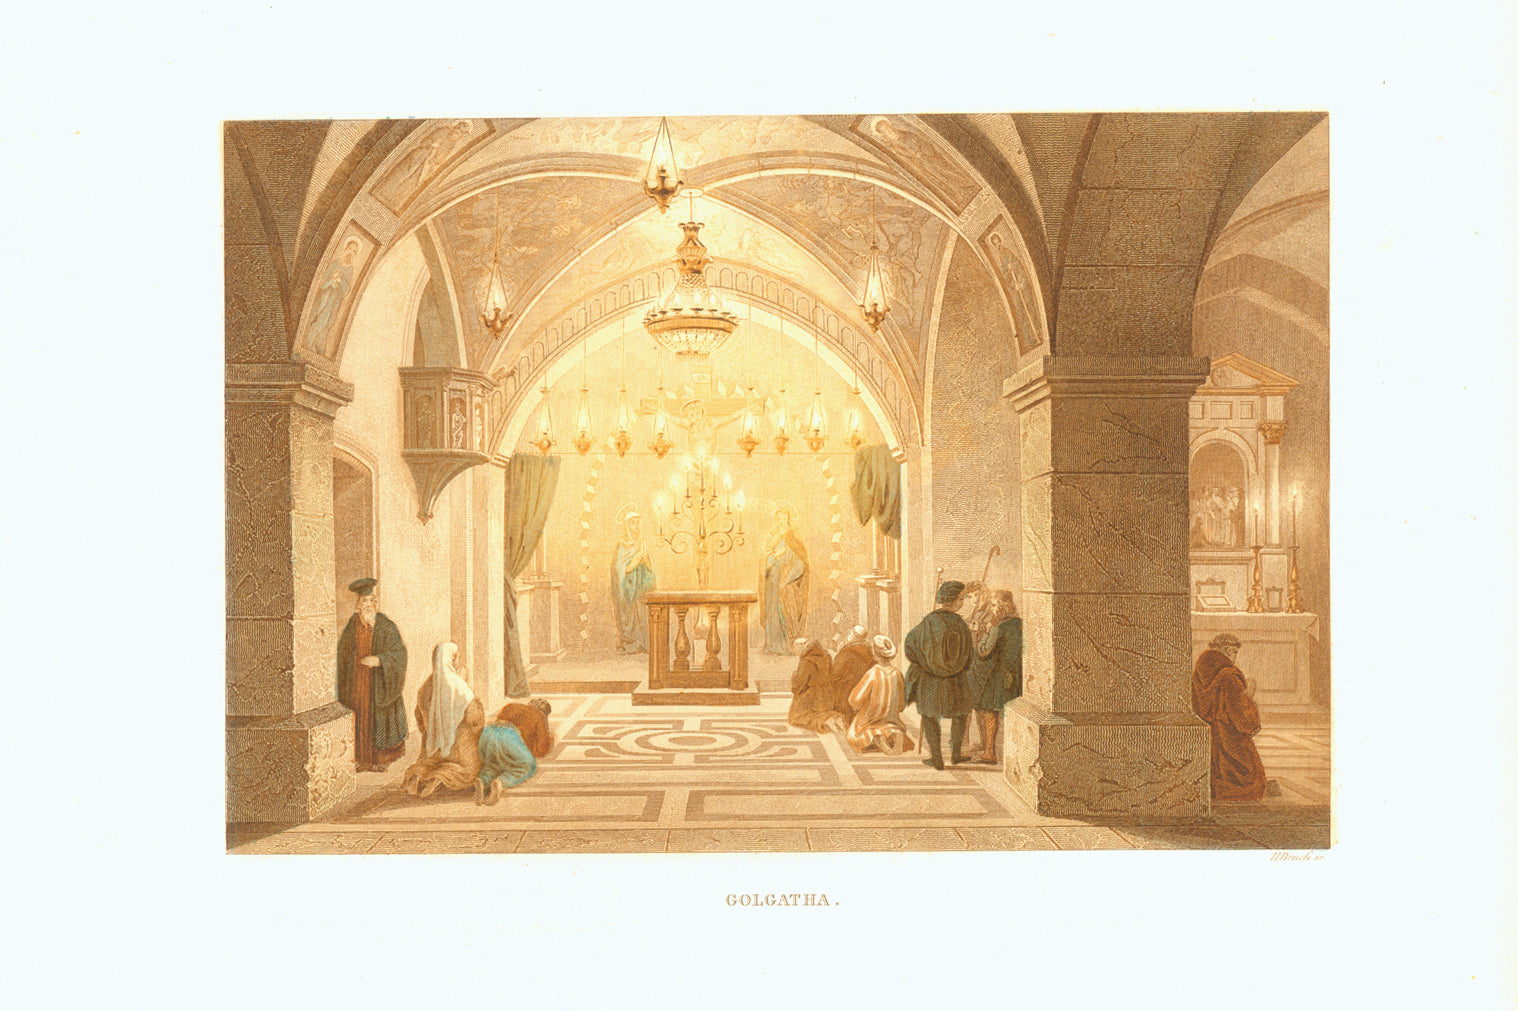 """Golgatha"" - Holy Sepulcher  Original antique print   Toned steel engraving with hand-colored highlights by H. Bruck. Published 1861."